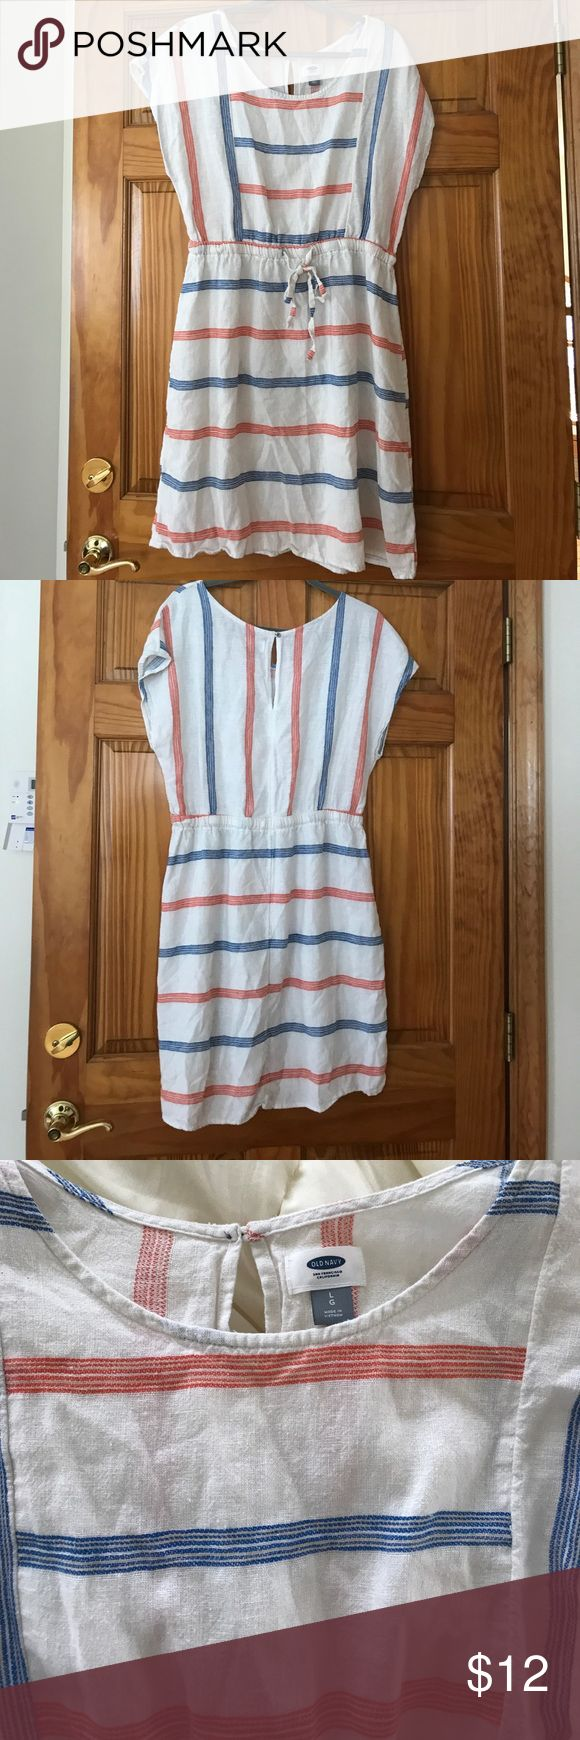 Old Navy striped dress Old Navy blue, orange/red, and white striped dress. Size L, in excellent condition! Old Navy Dresses